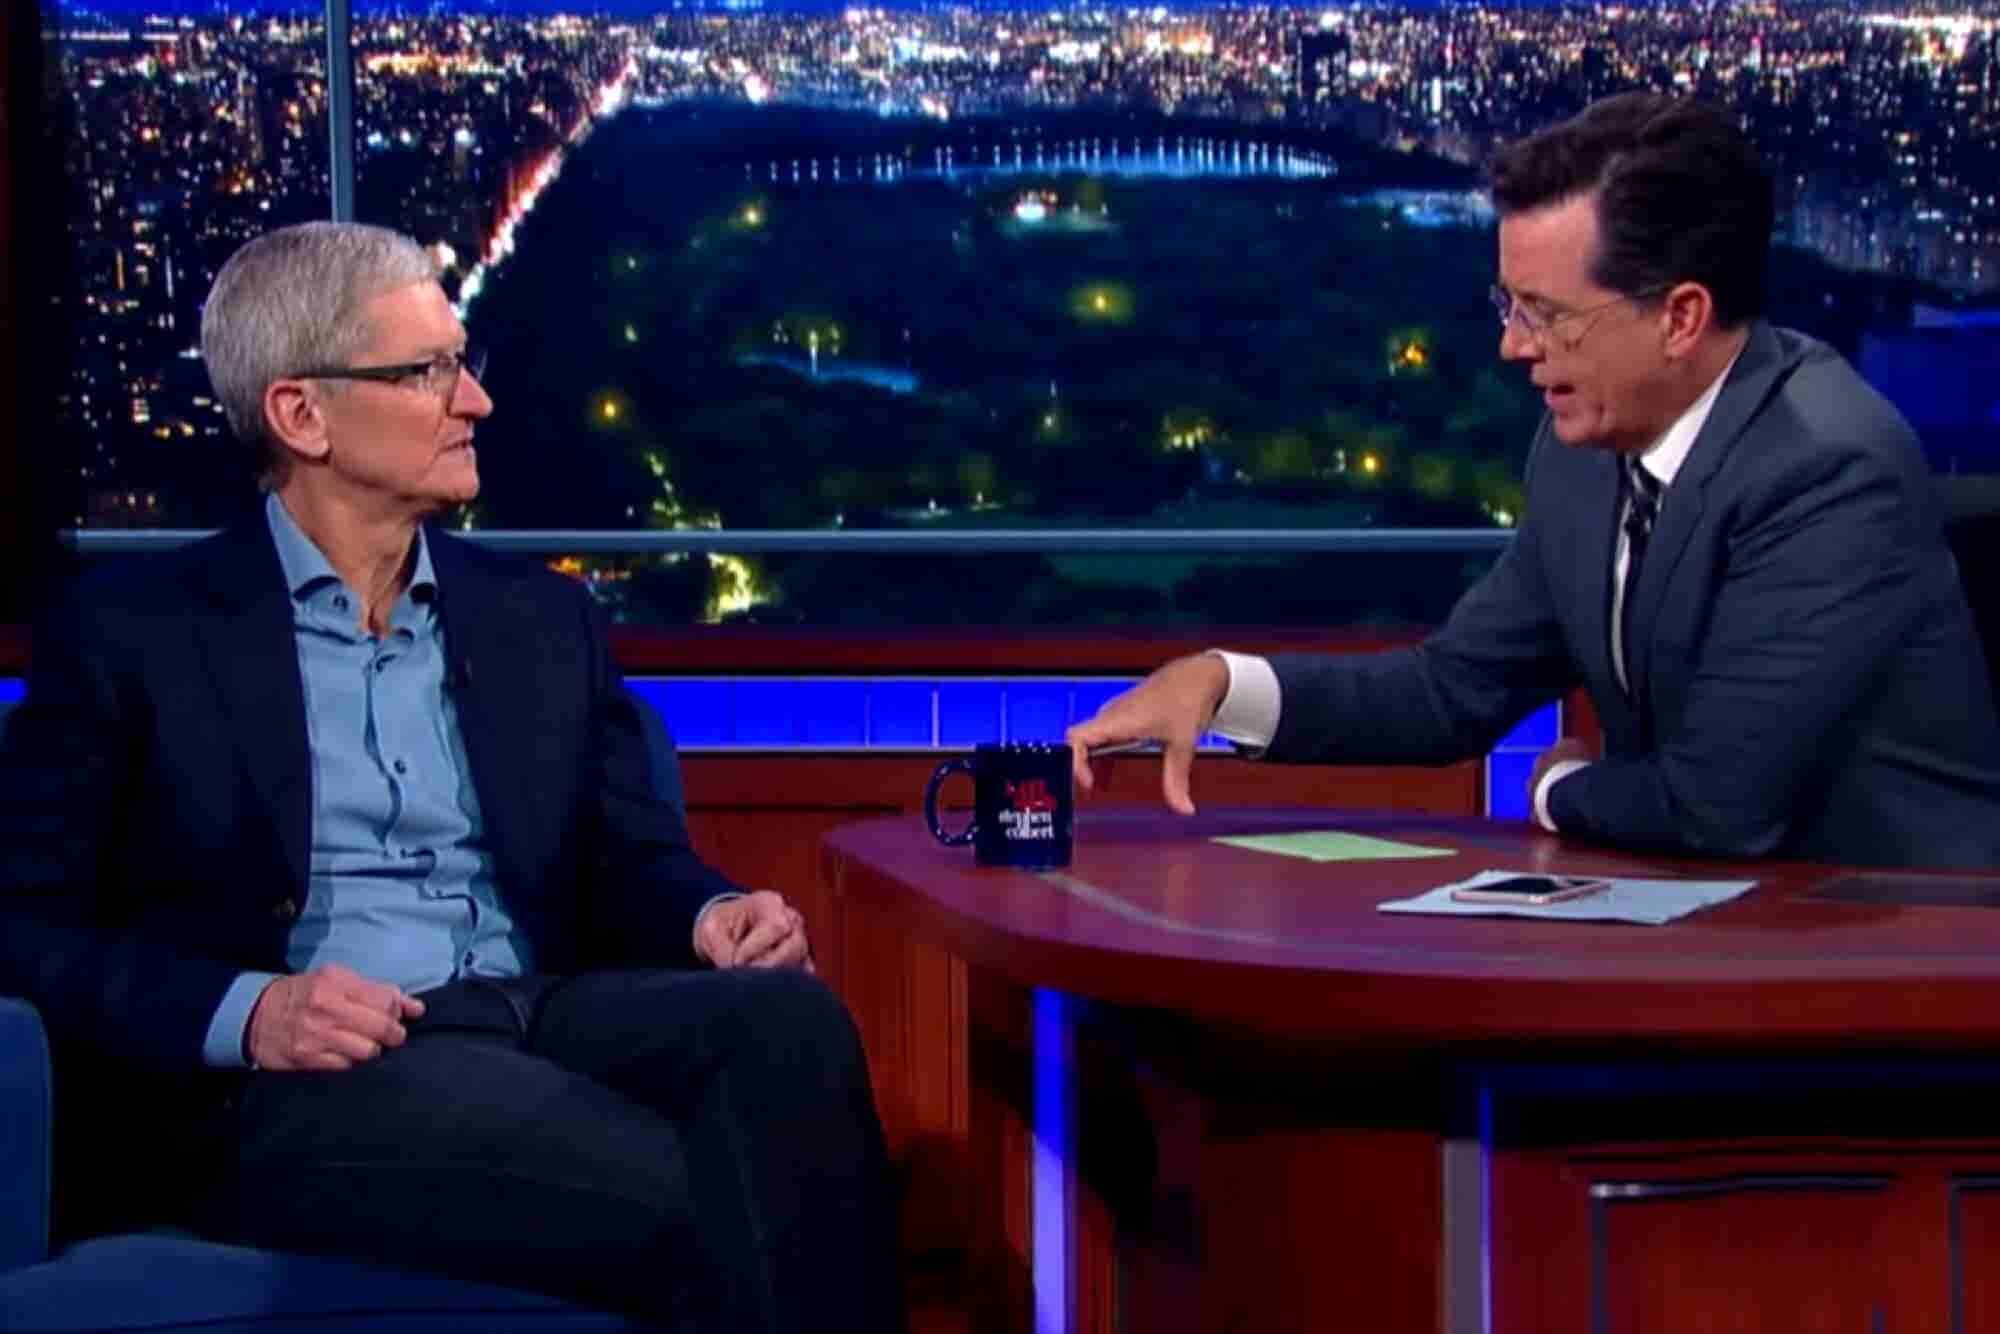 Tim Cook Tells Stephen Colbert He Had a 'Tremendous Responsibility' to...